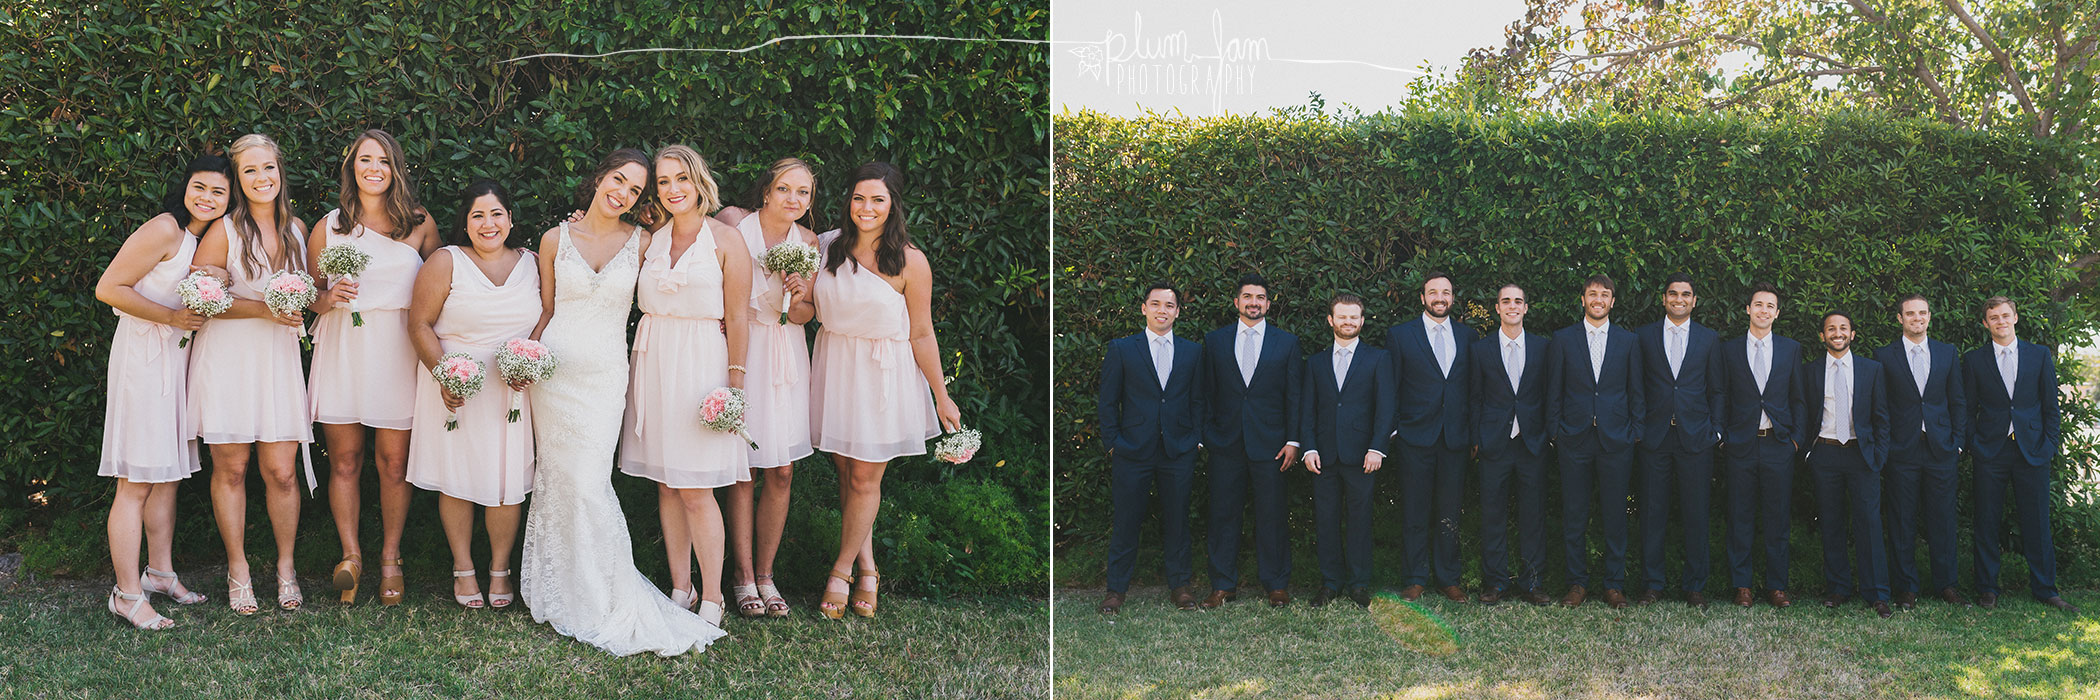 AllieRyanWedding-Blog10-PlumJamPhotography